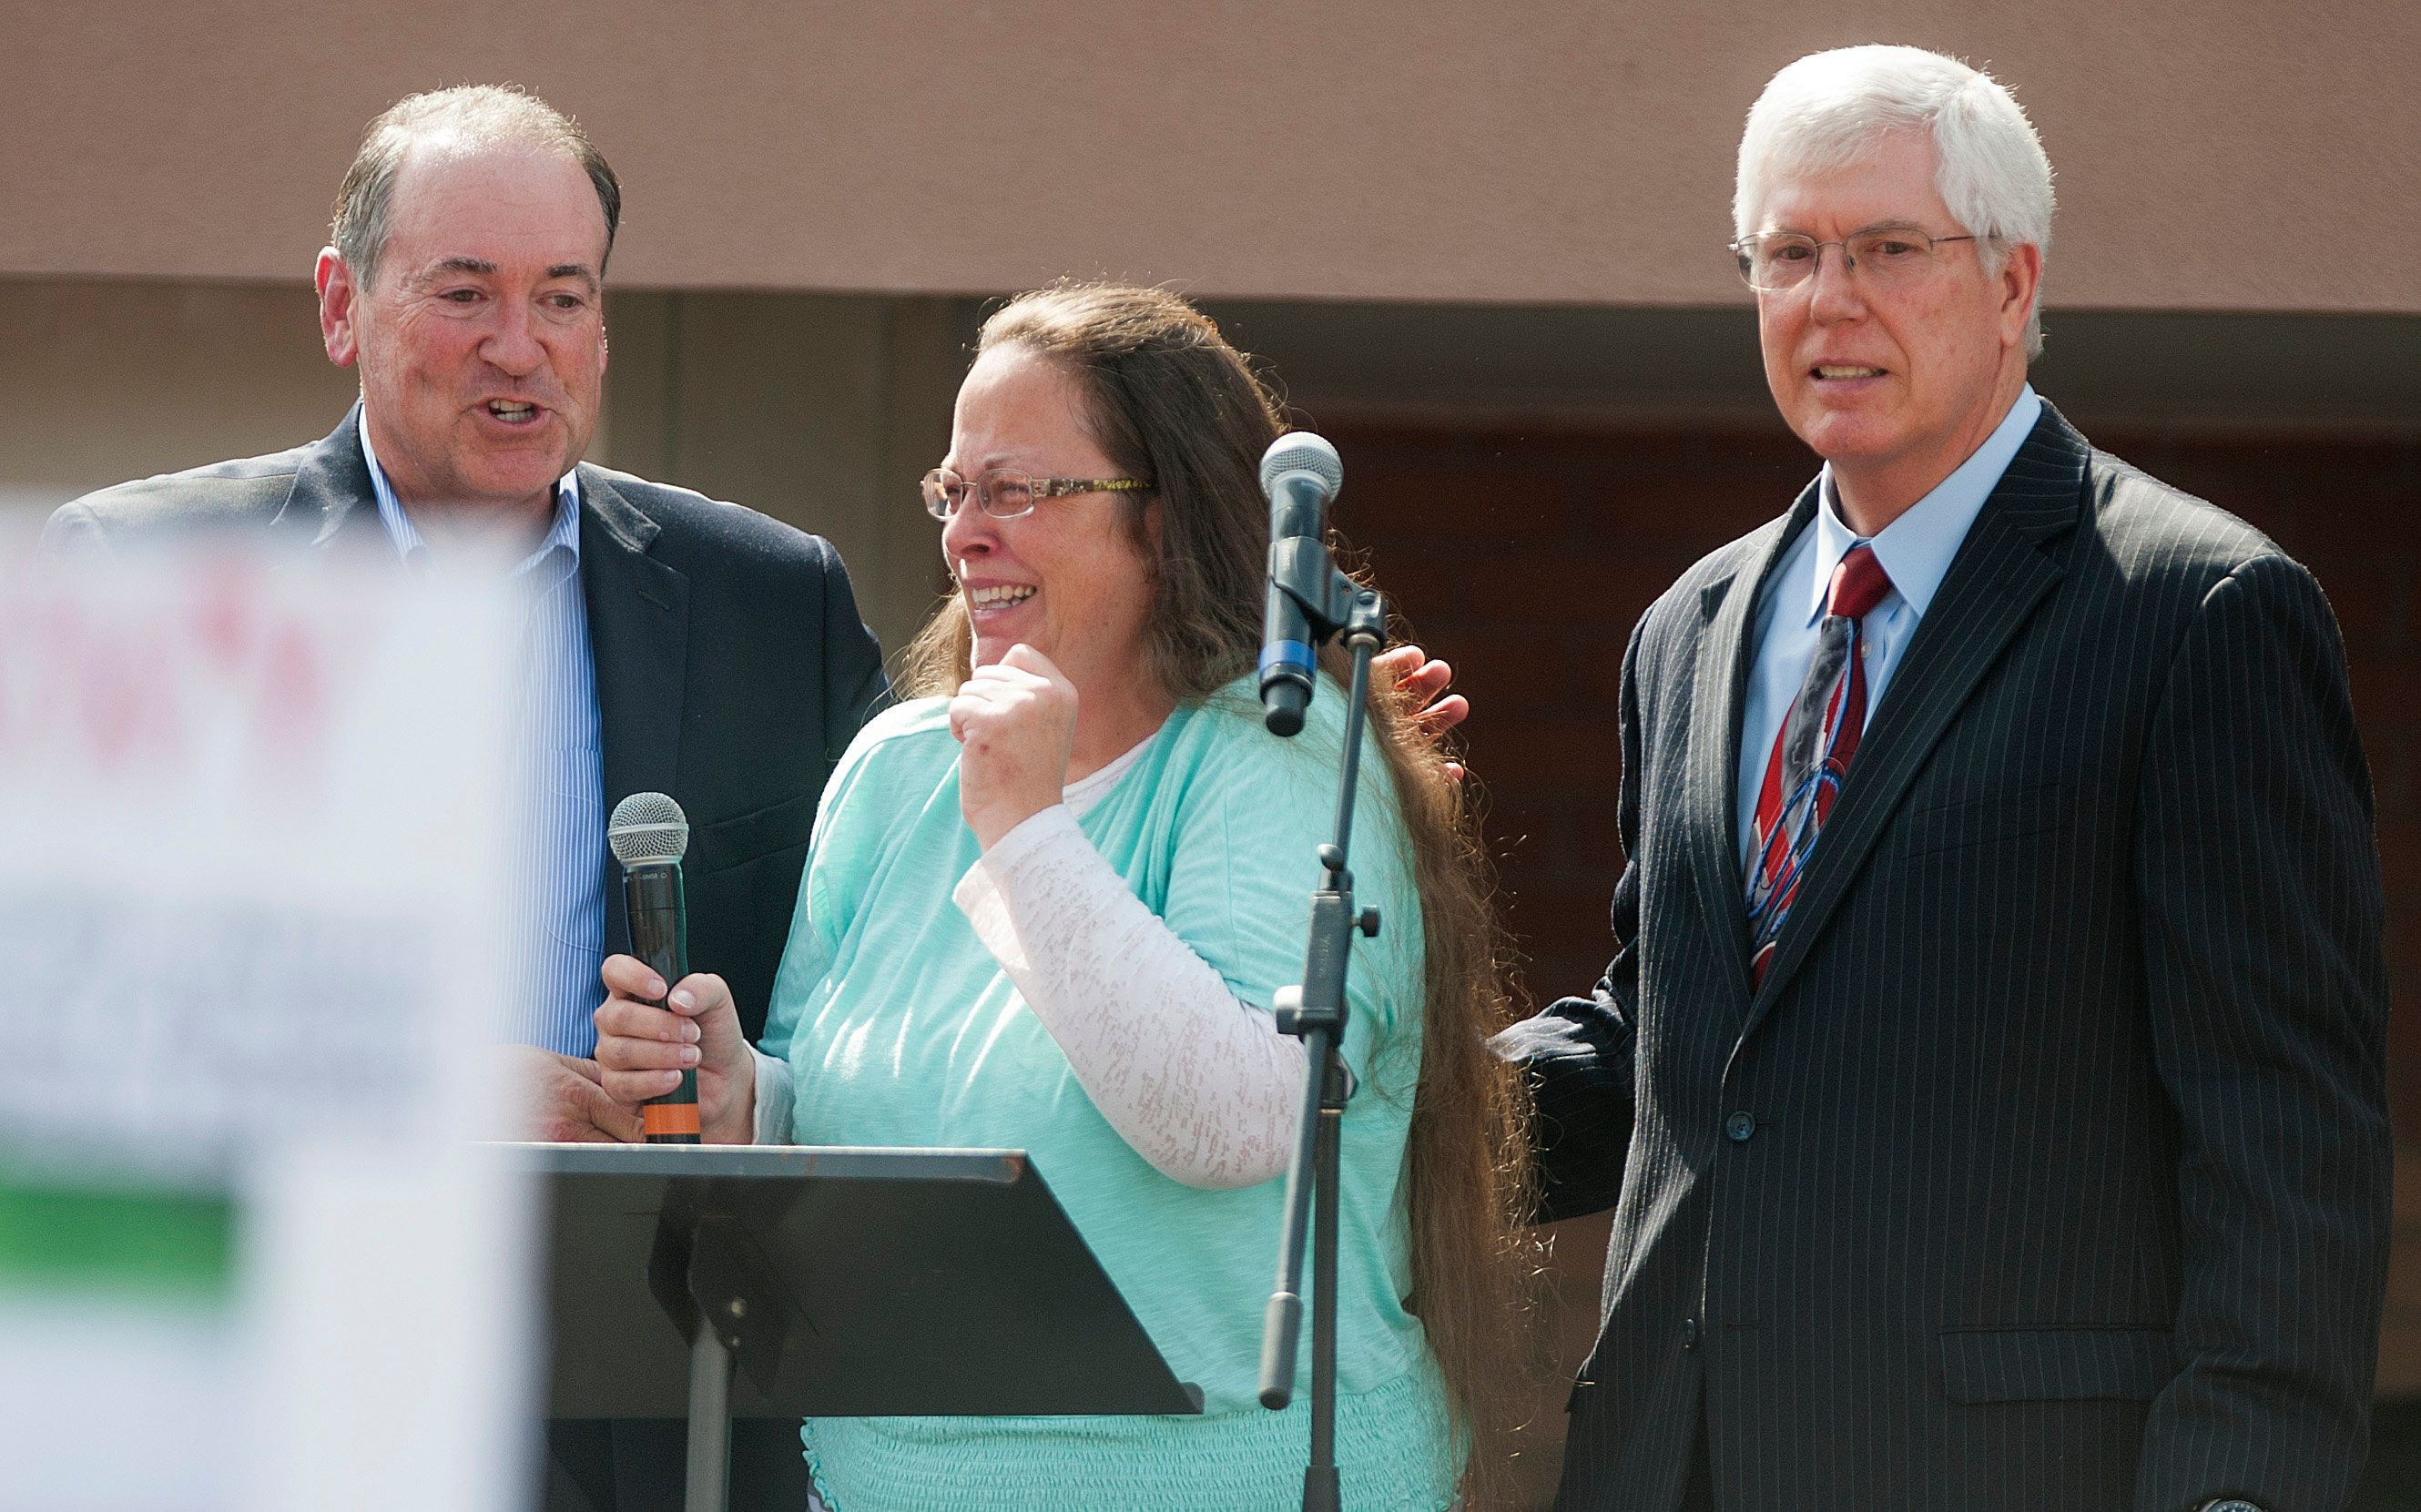 Mat Staver (right) is best known for representing Kentucky county clerk Kim Davis when she refused to issue marriage licenses